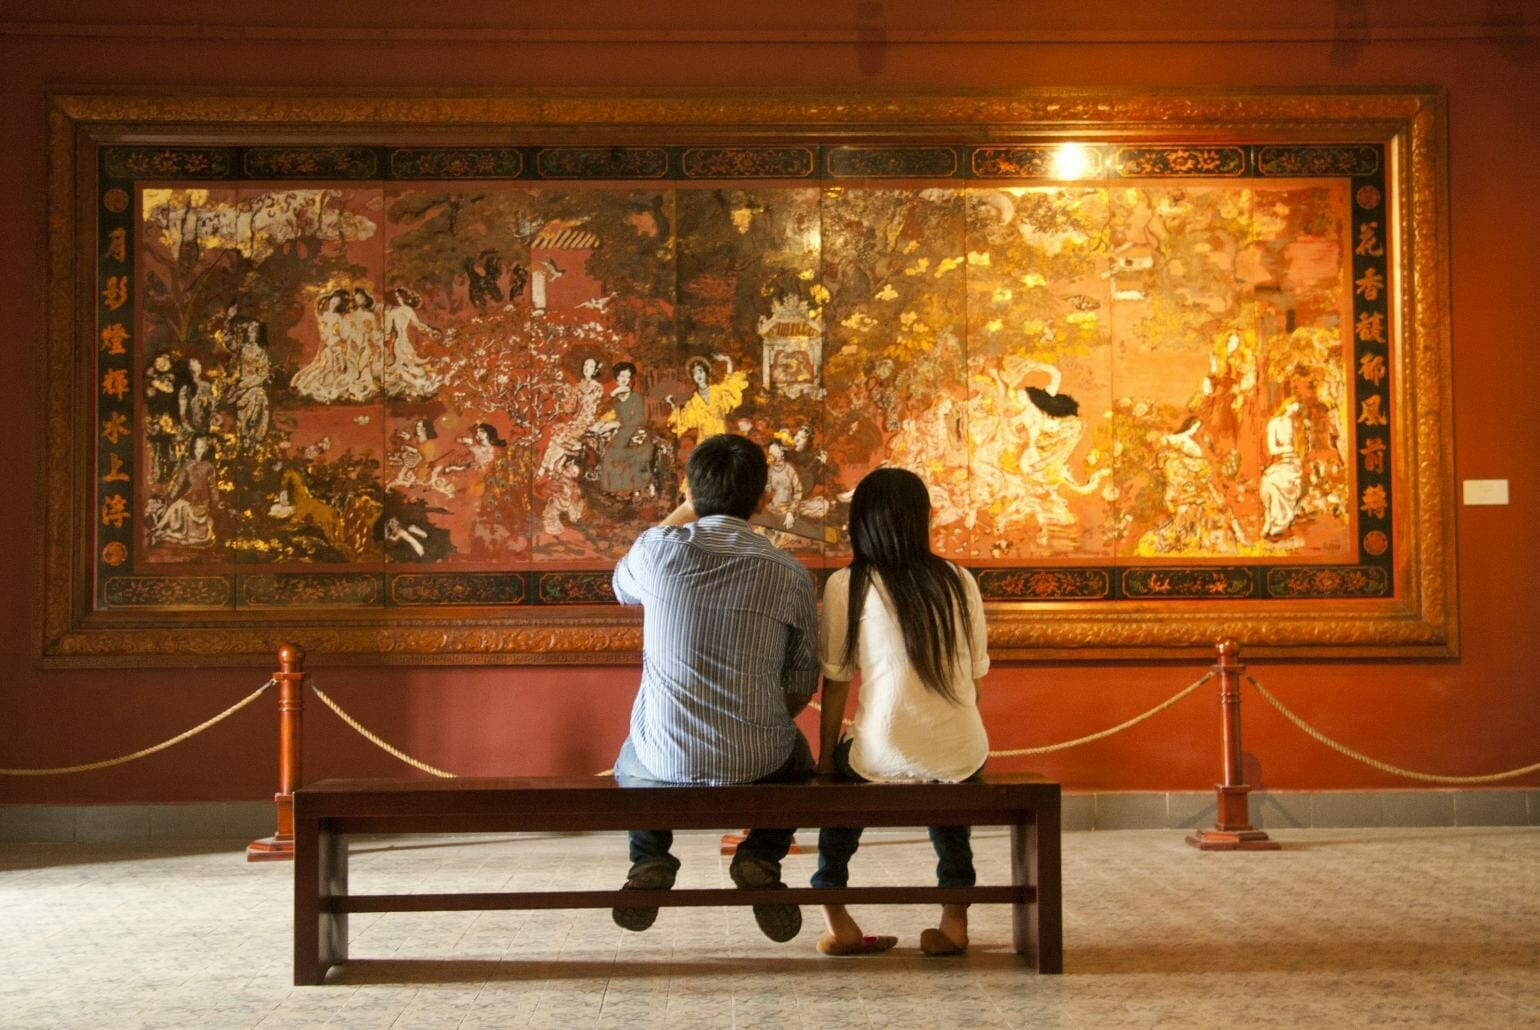 cheap-date-ideas-museum date